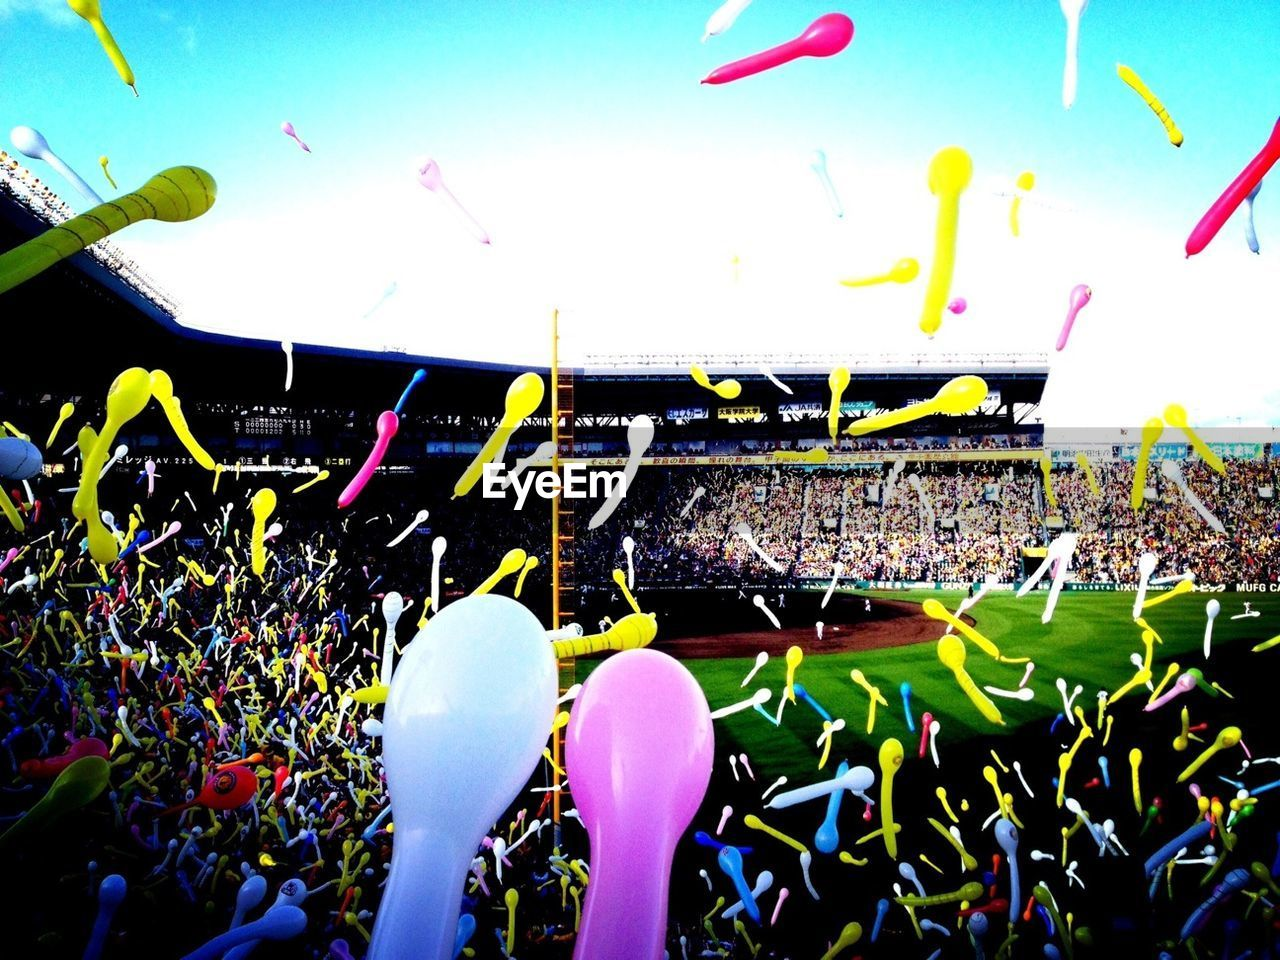 crowd, large group of people, audience, spectator, stadium, excitement, sport, event, cheering, togetherness, enjoyment, real people, fan - enthusiast, confetti, celebration, soccer, outdoors, day, men, flying, human hand, people